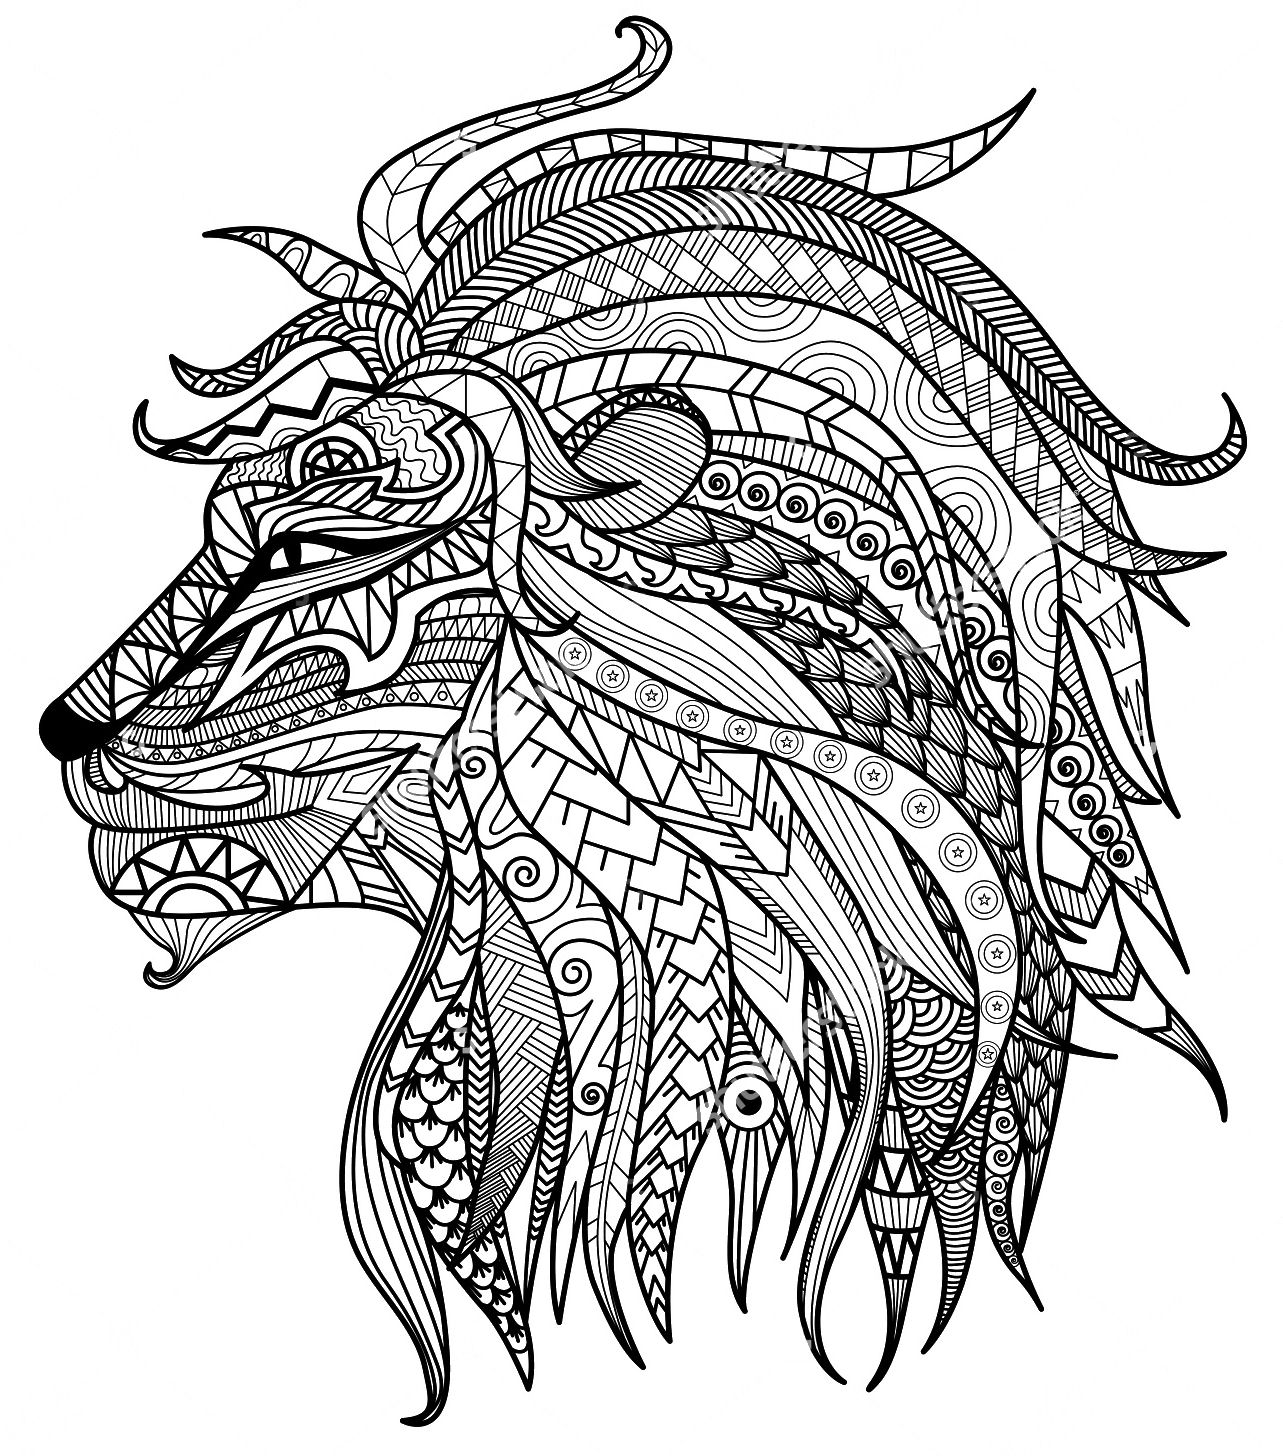 coloring page of a lion scary lion drawing at getdrawings free download coloring lion a of page